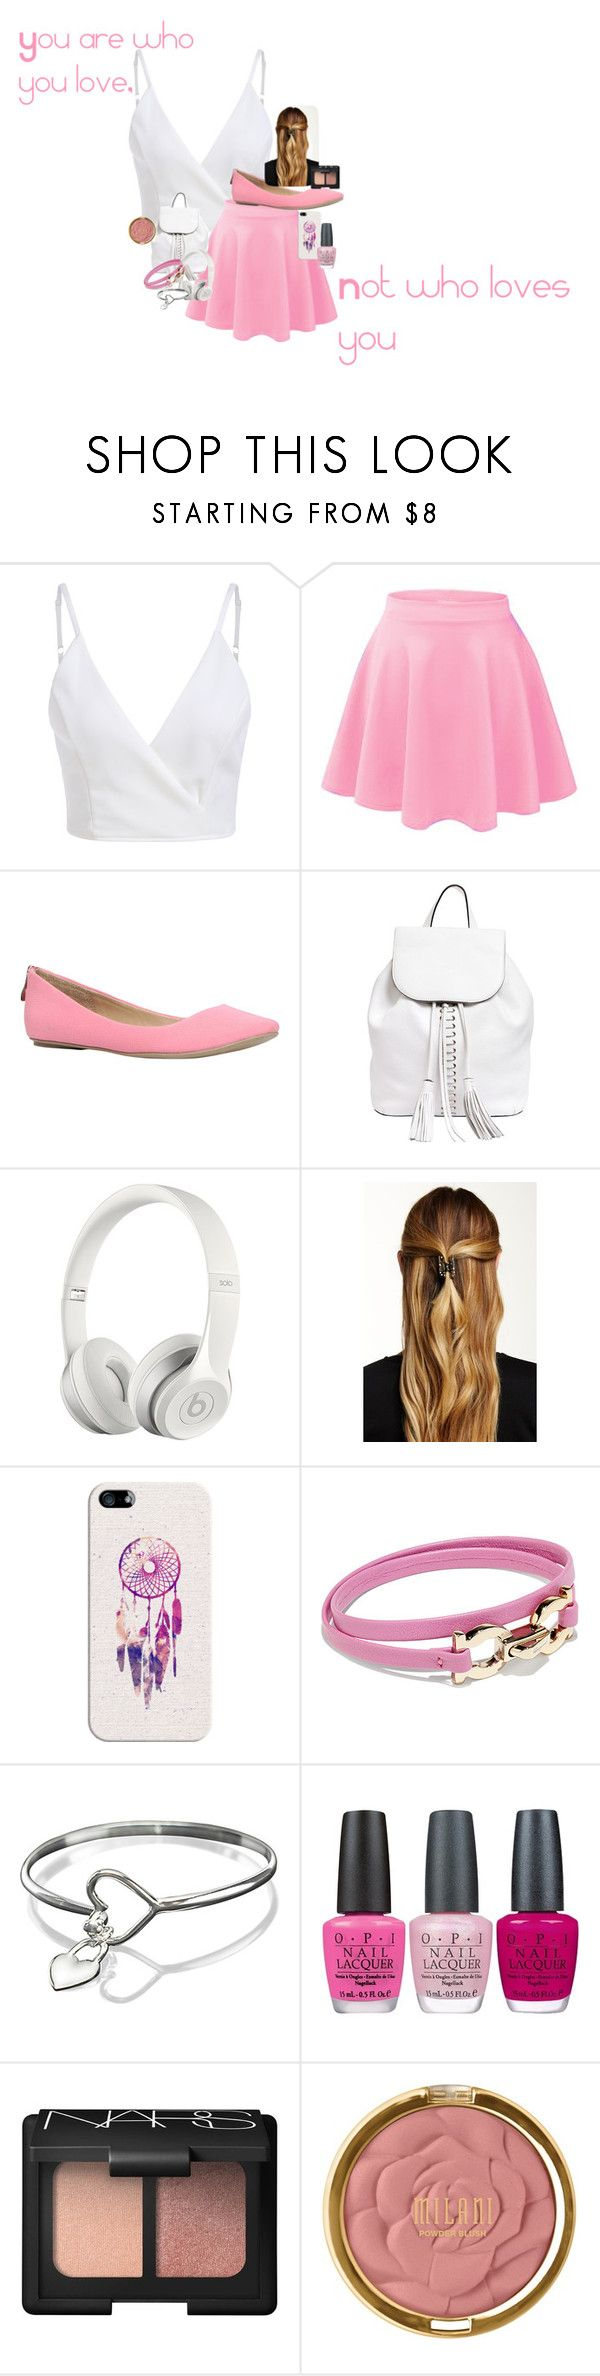 """""""Untitled #224"""" by ava-adams123 ❤ liked on Polyvore featuring Call it SPRING, Rebecca Minkoff, Beats by Dr. Dre, Natasha Accessories, Casetify, Salvatore Ferragamo, OPI, NARS Cosmetics and Milani"""